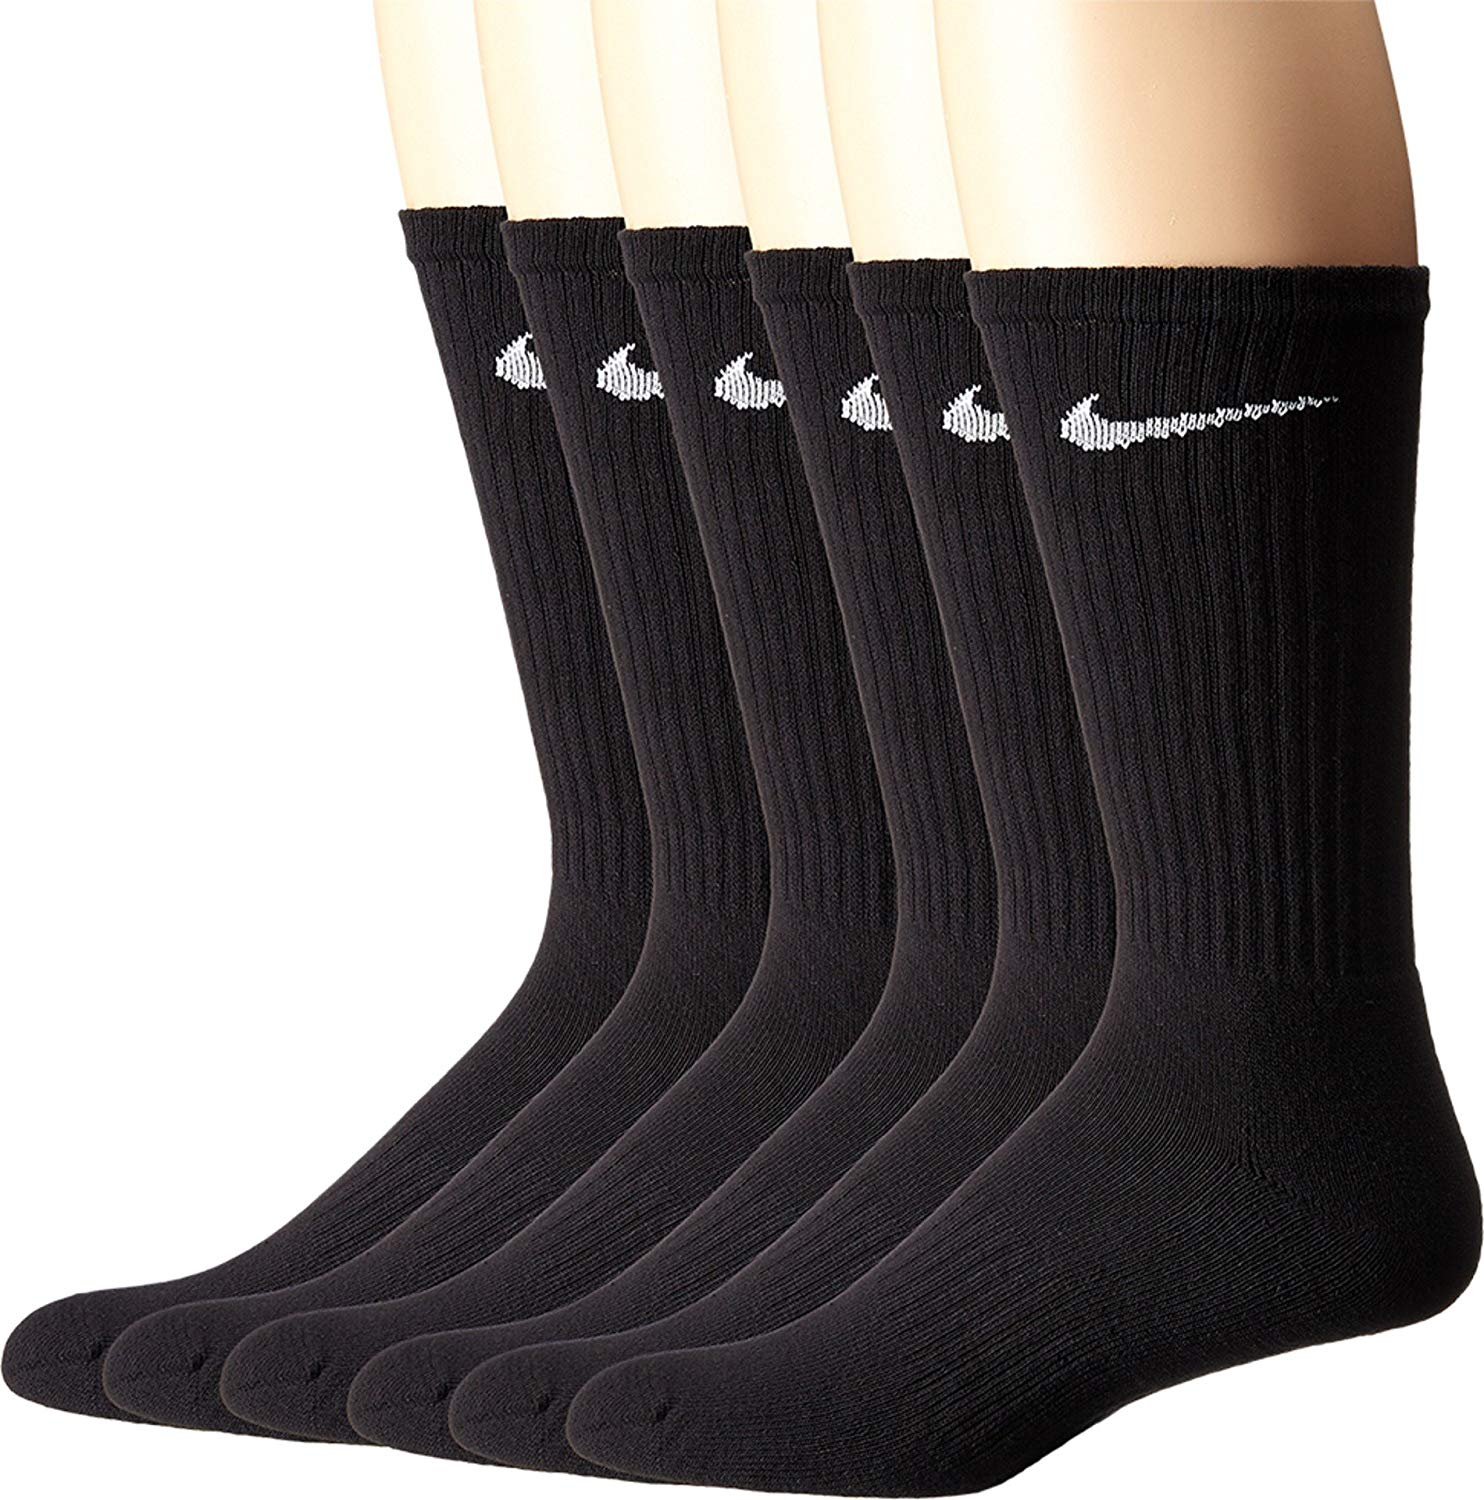 Nike sells their Performance Cushion Crew Socks in packs of six so you can wear a pair almost every day of the week..